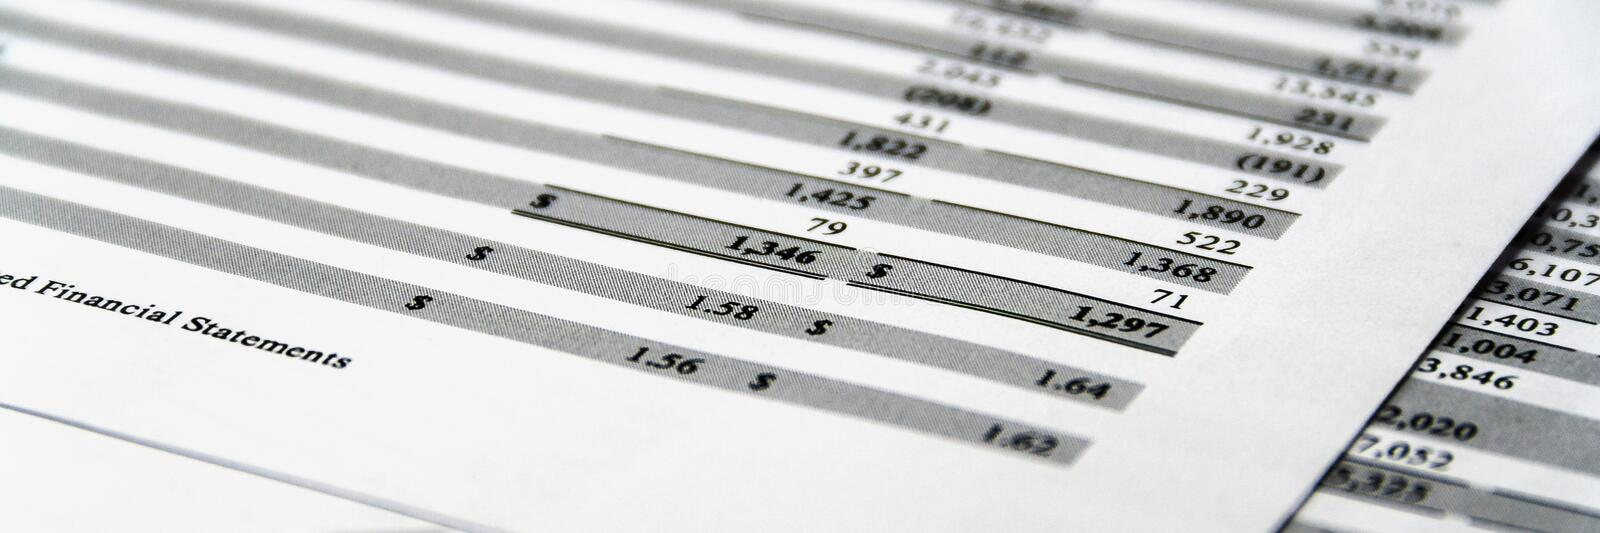 Balance sheet in stockholder report book, accounting balance sheet is mock-up stock photo